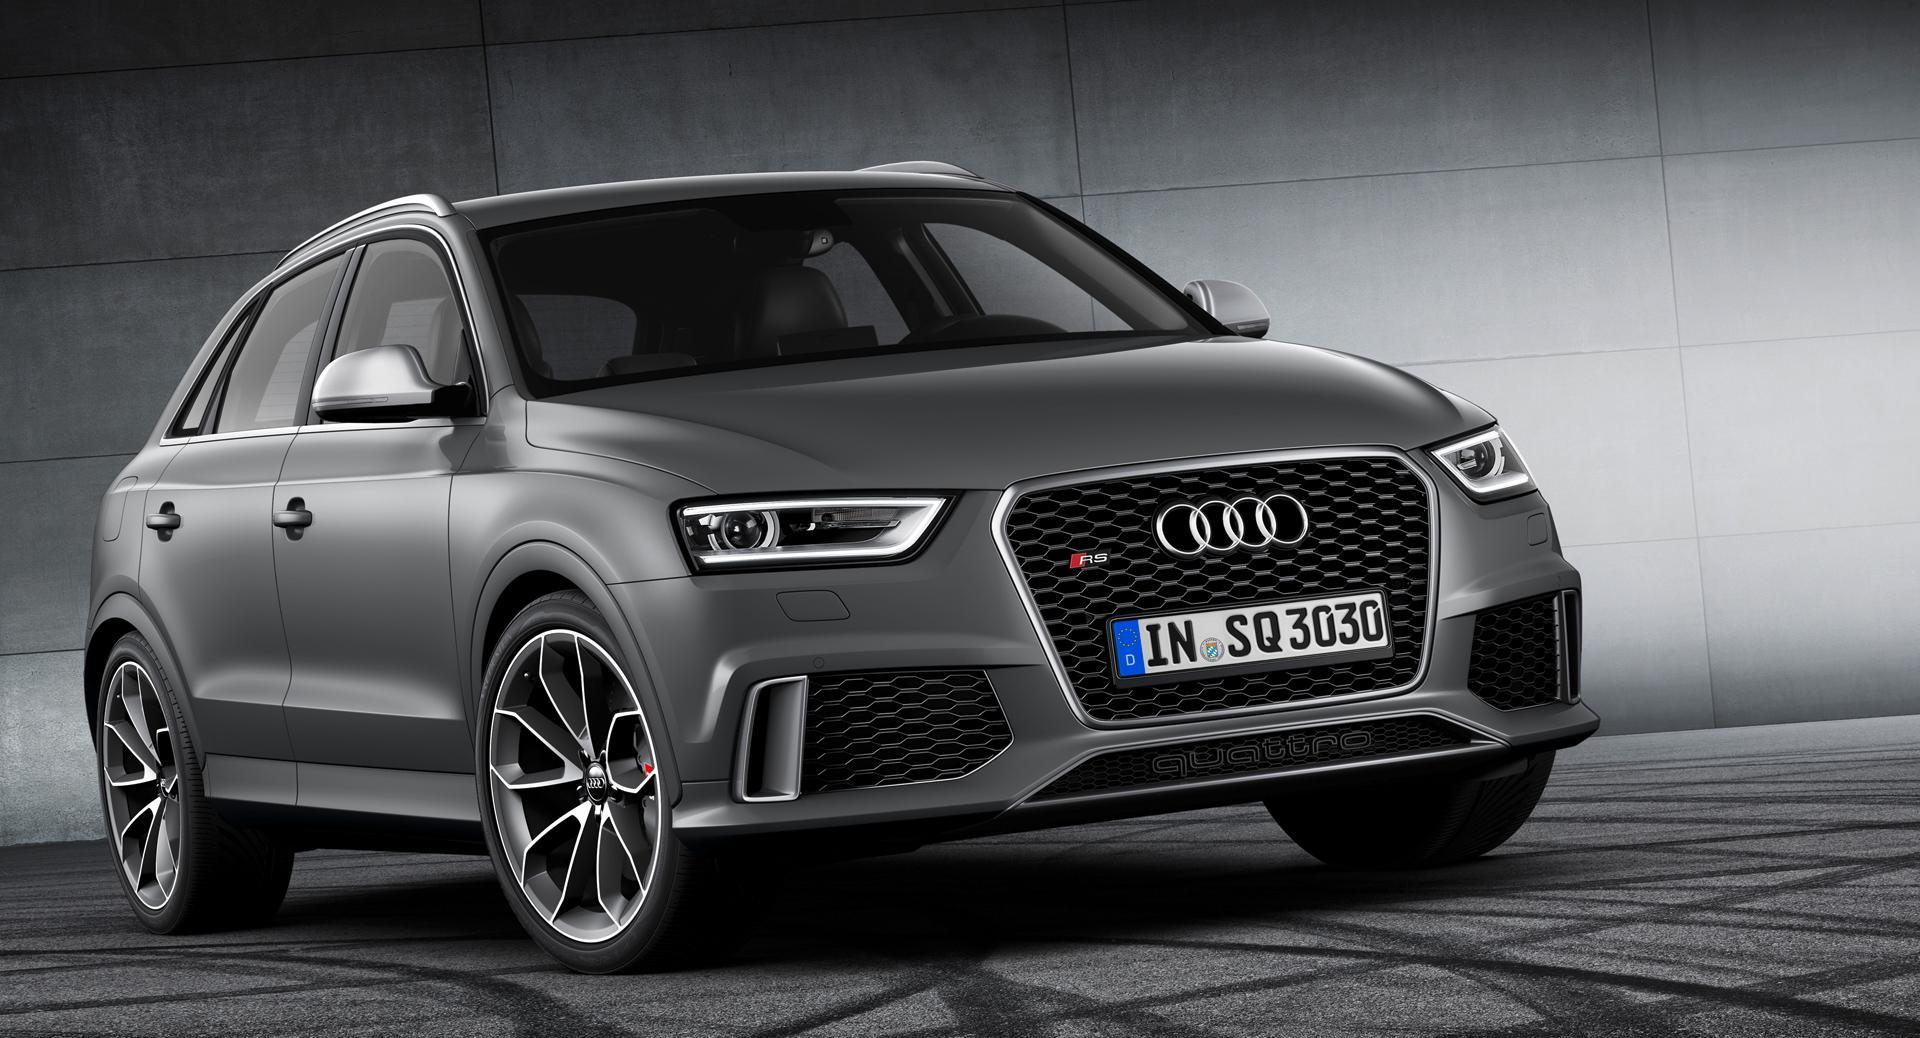 Audi Q3 HD Smoke Grey wallpaper 1920x1038